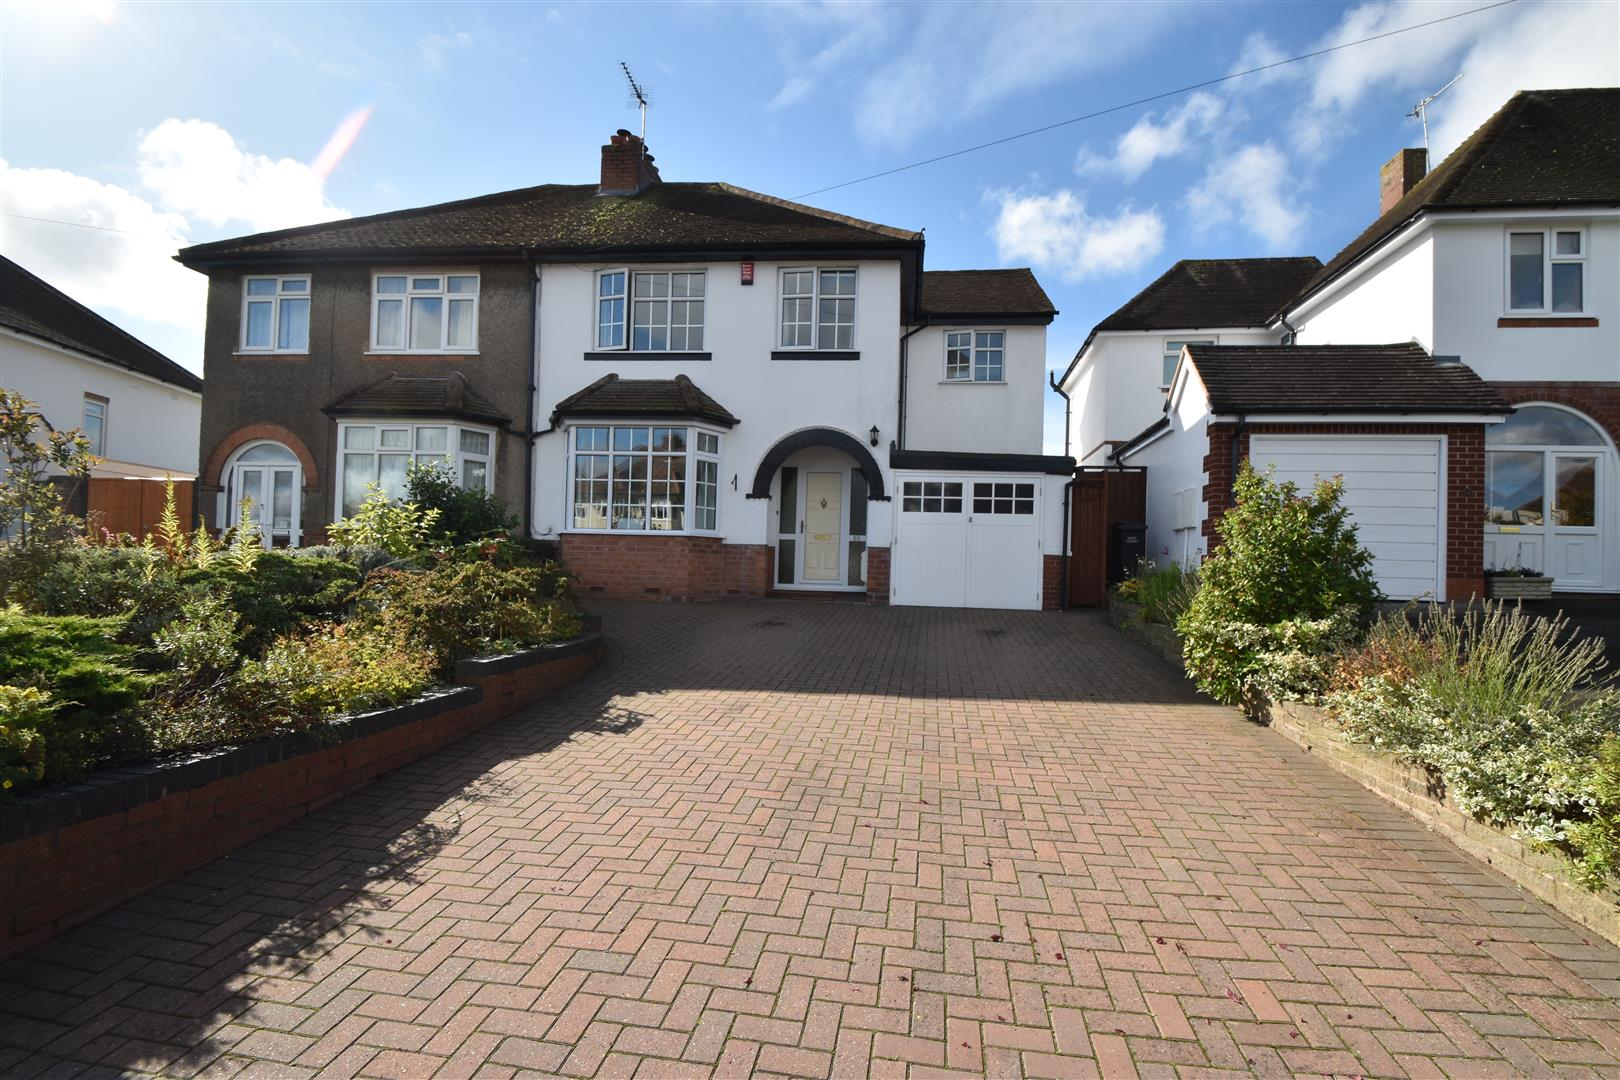 4 Bedrooms Semi Detached House for sale in Oakland Avenue, Droitwich